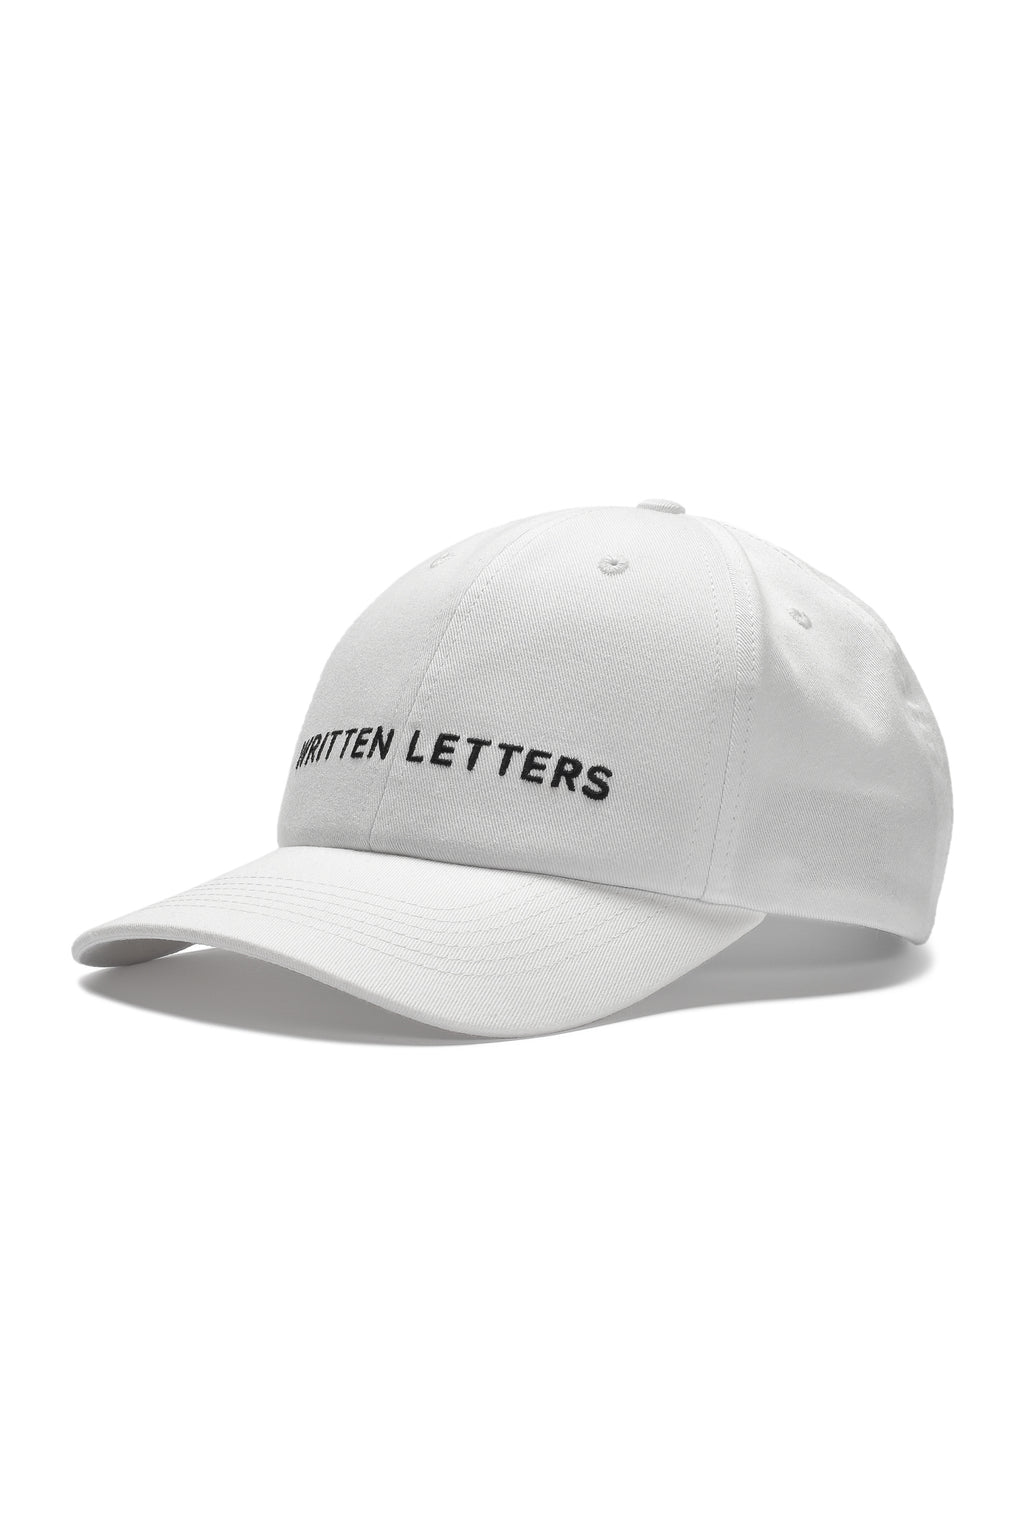 Written Letters White Logo Cap Side